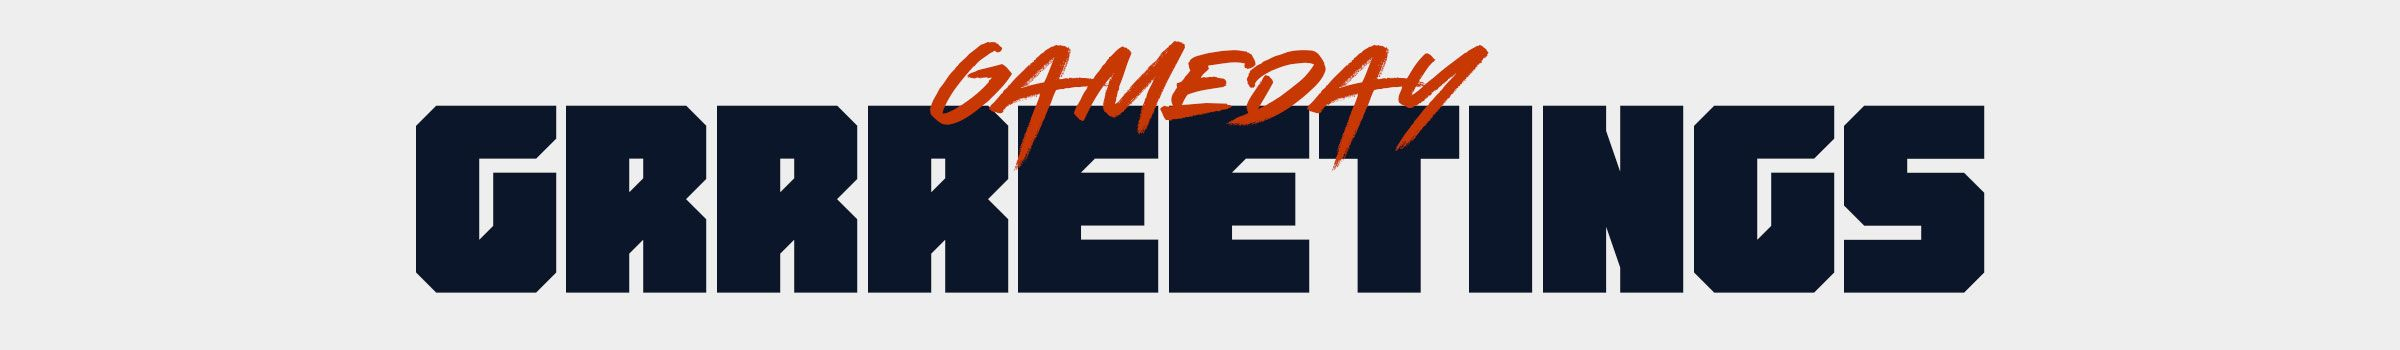 gamedaygrrreetings-header-0319